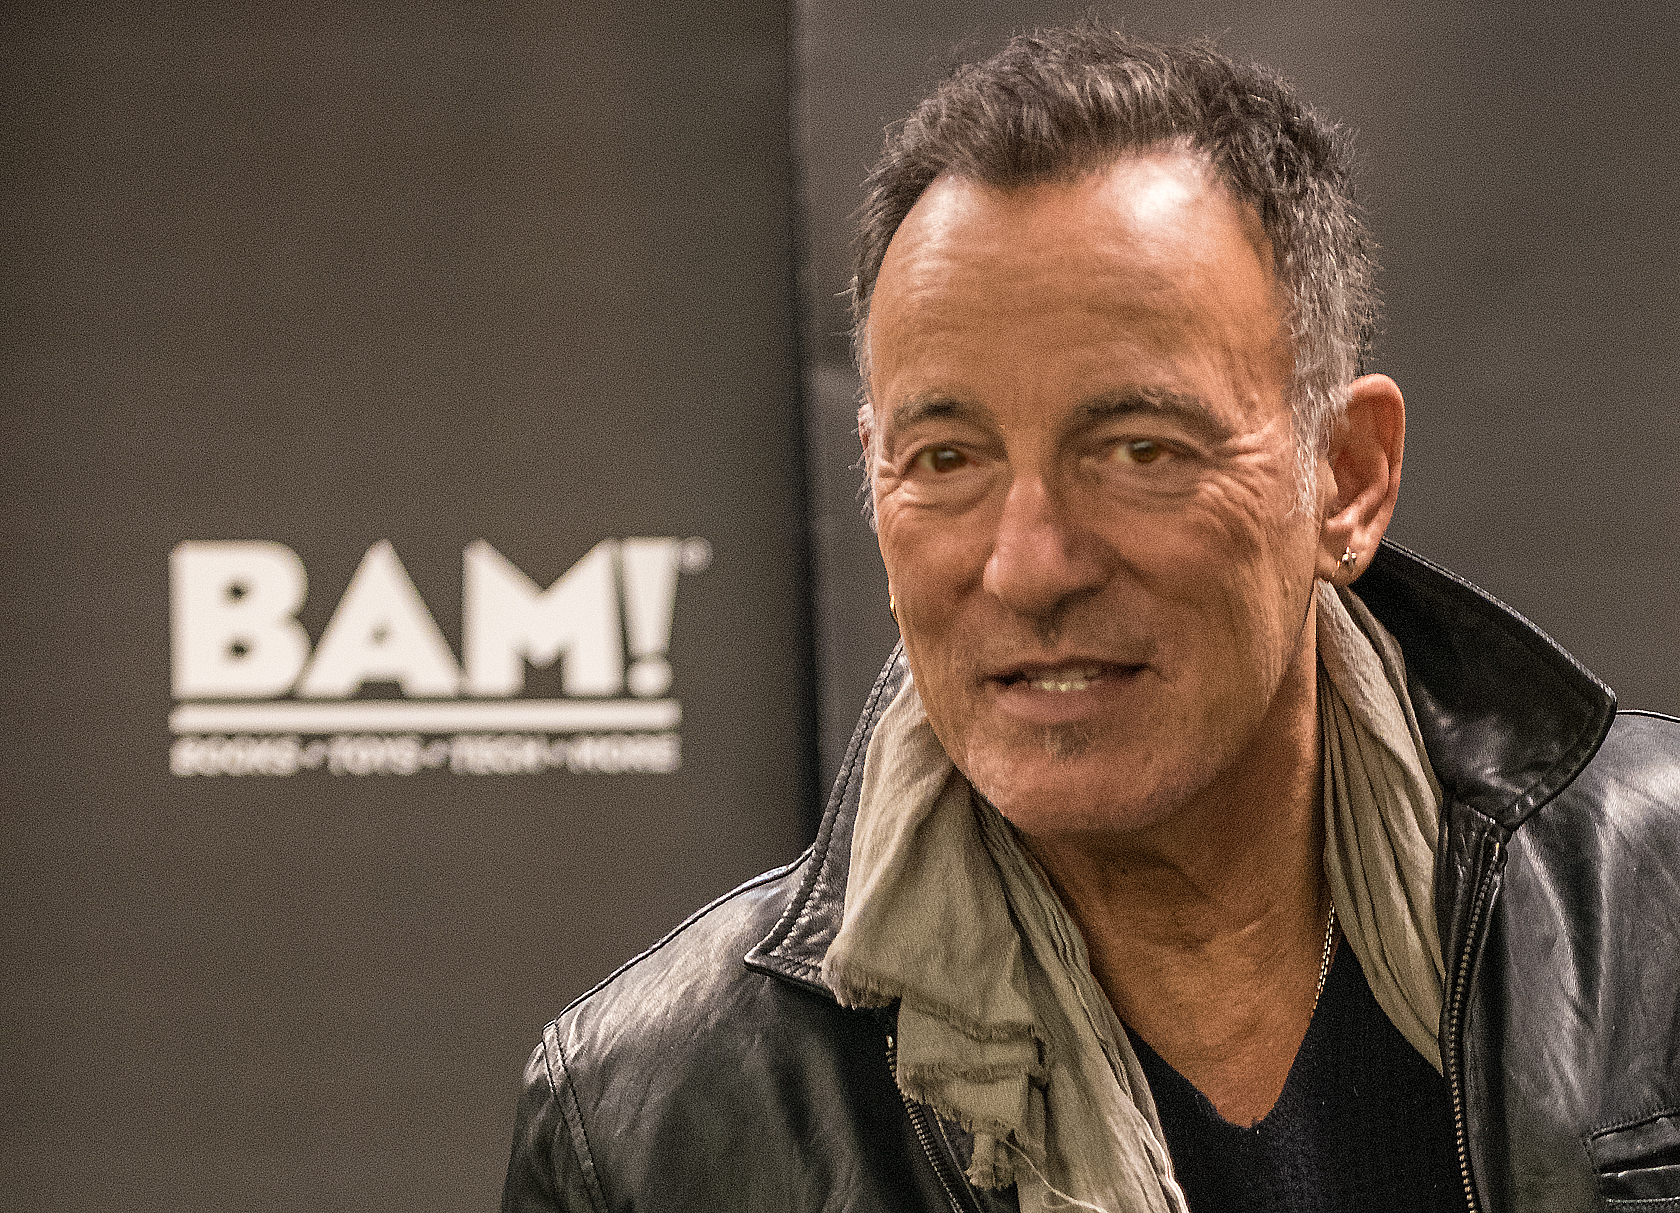 Bruce Springsteen @ Books A Million (BAM) in Chicago